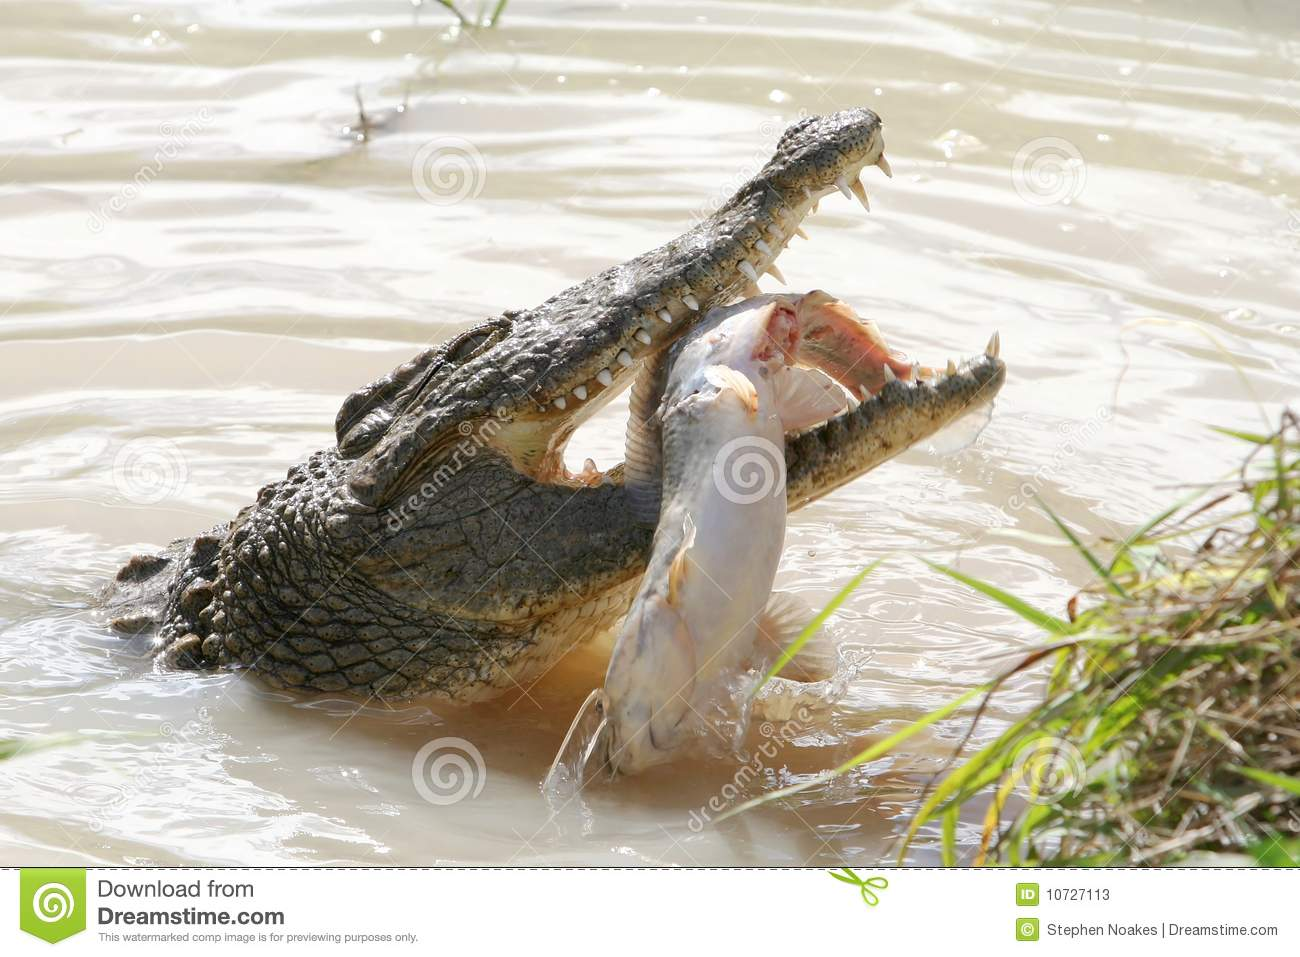 Crocodile eating fish  Crocodile